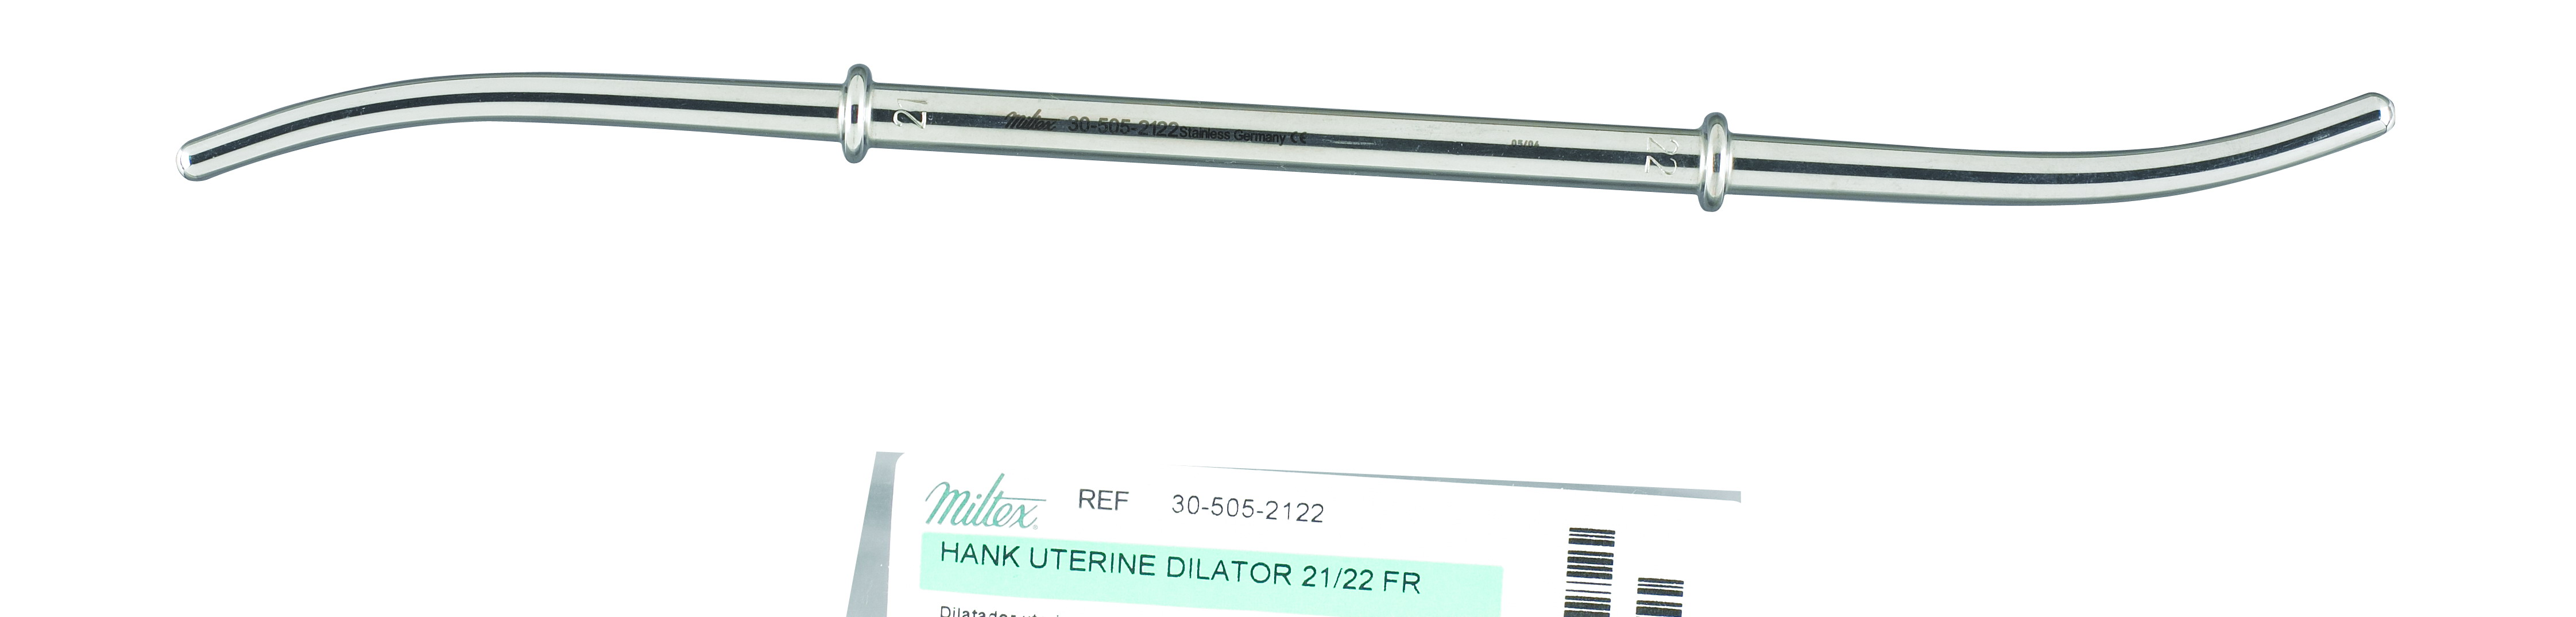 hank-uterine-dilators-10-1-2-267-cm-double-end-21-22-fr7-73-mm-30-505-2122-miltex.jpg